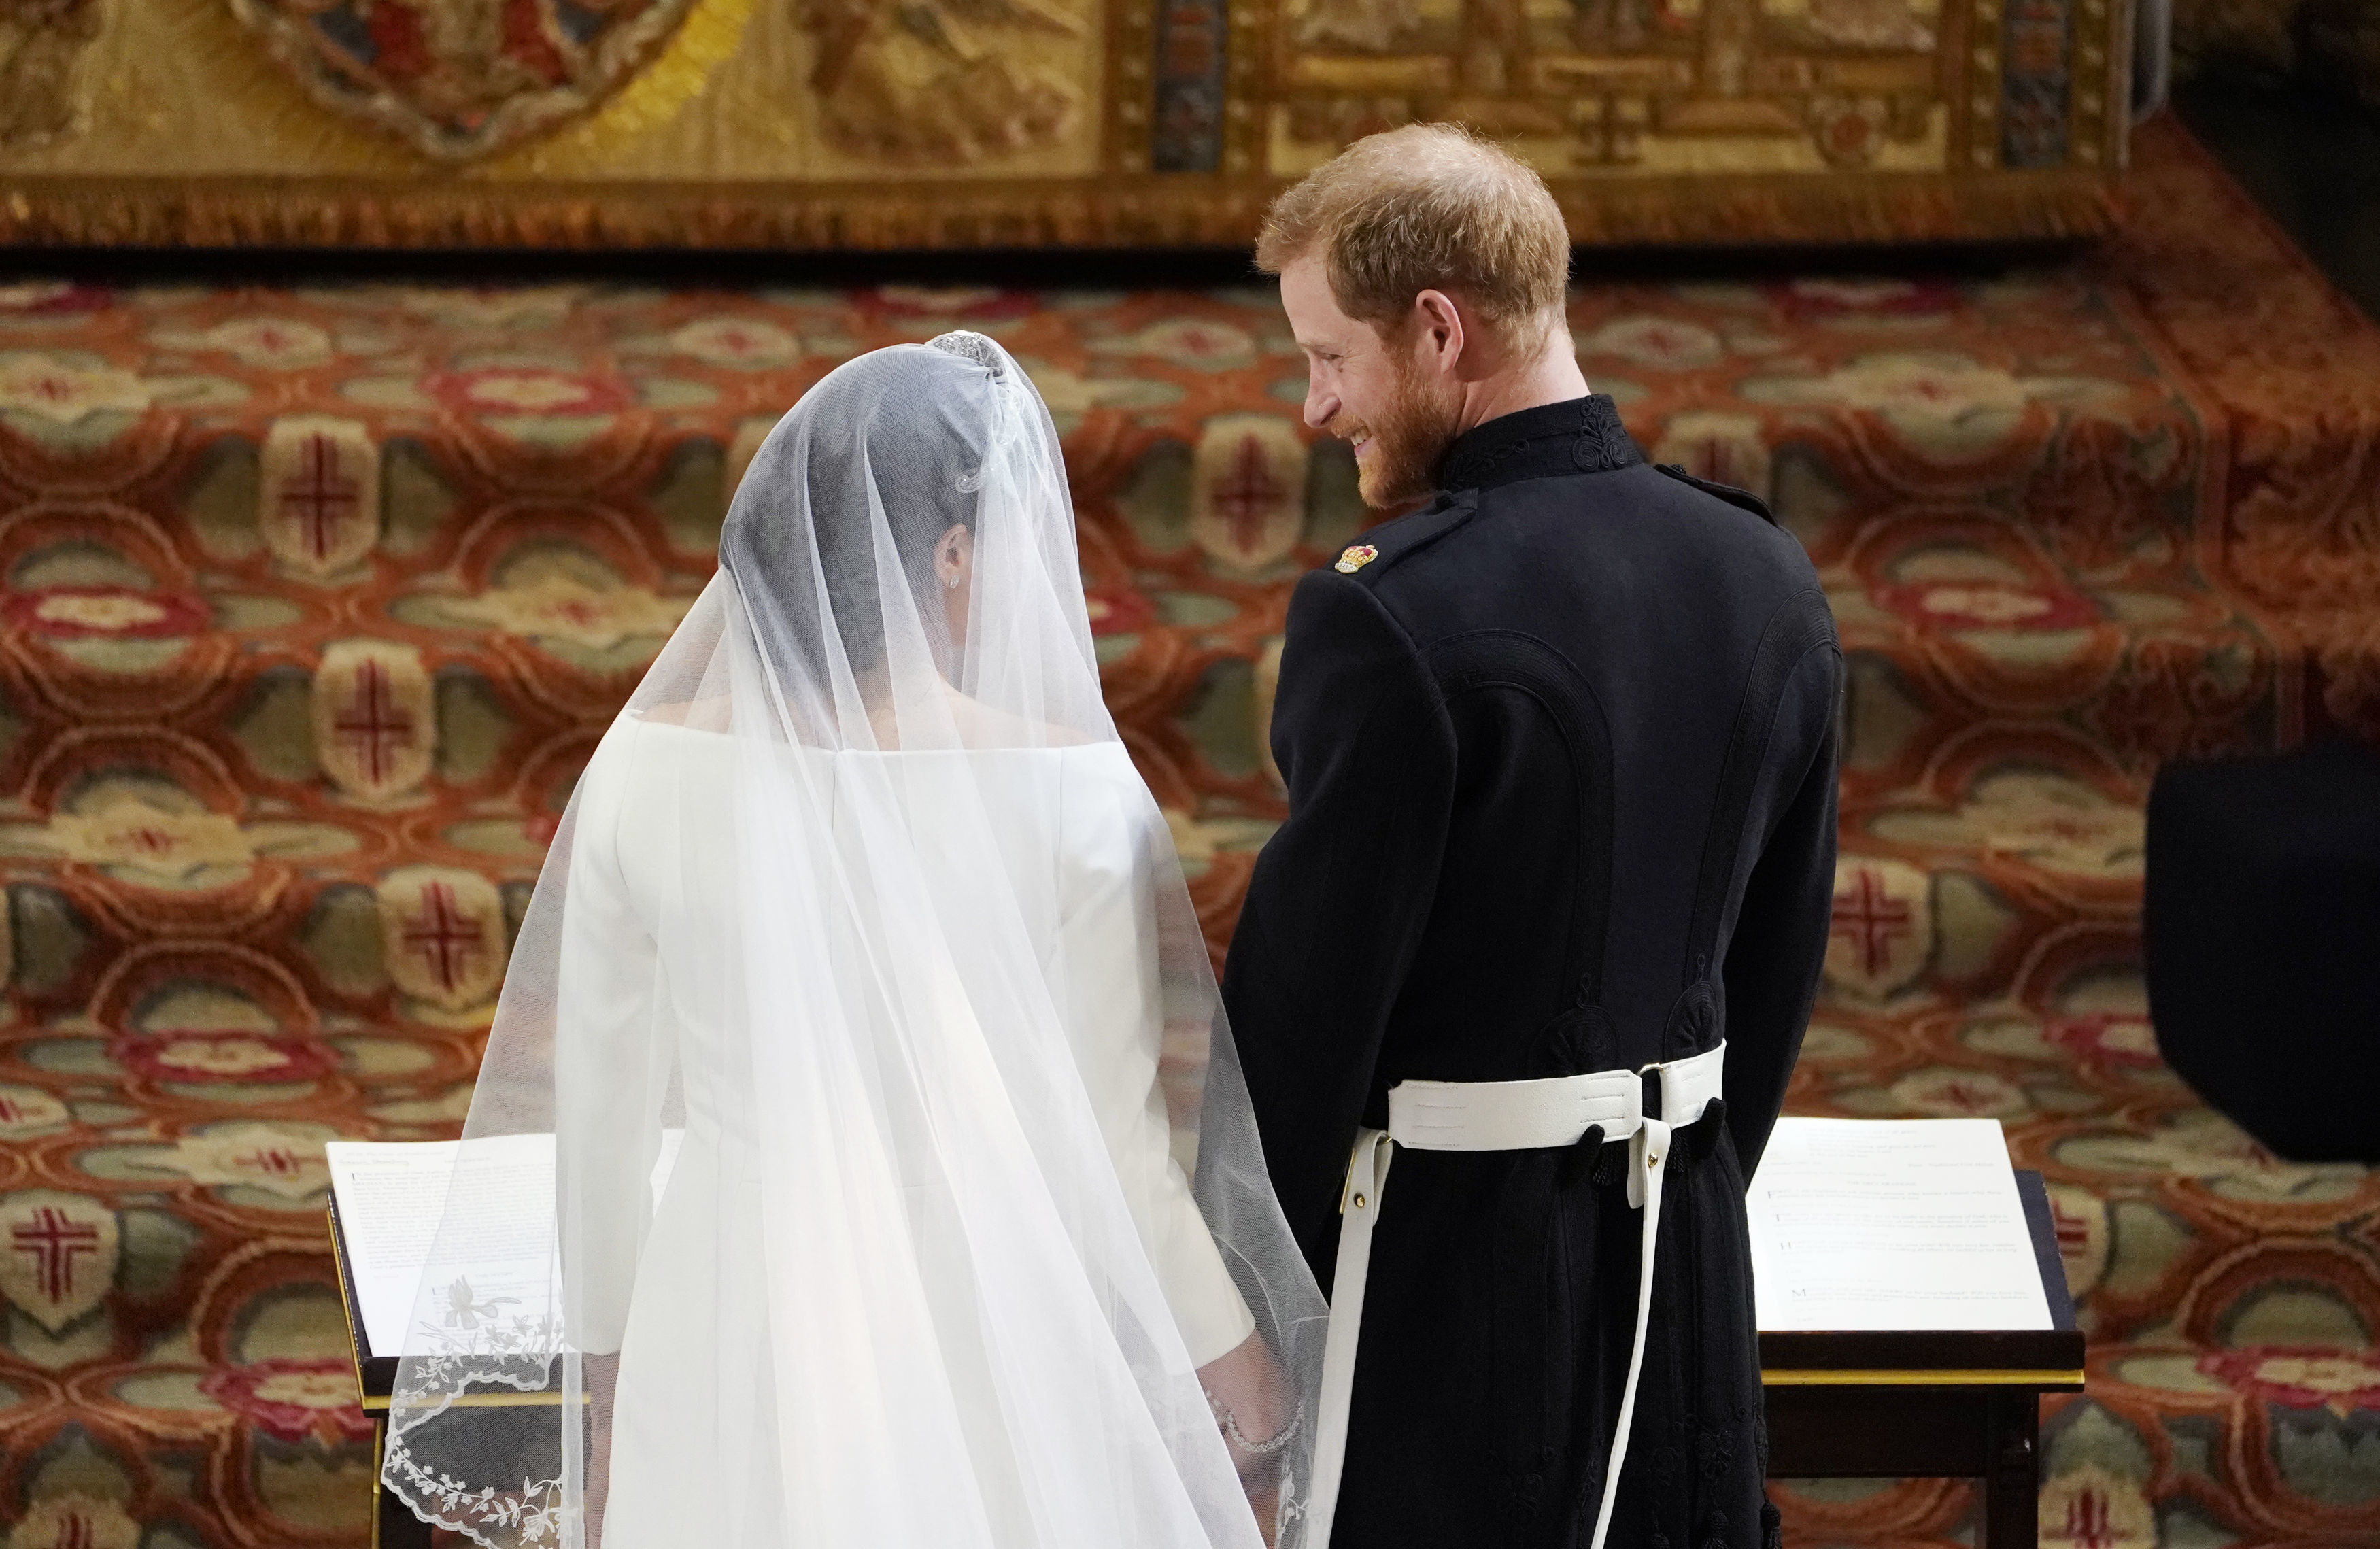 Prince Harry stands at the altar with Markle during the ceremony.